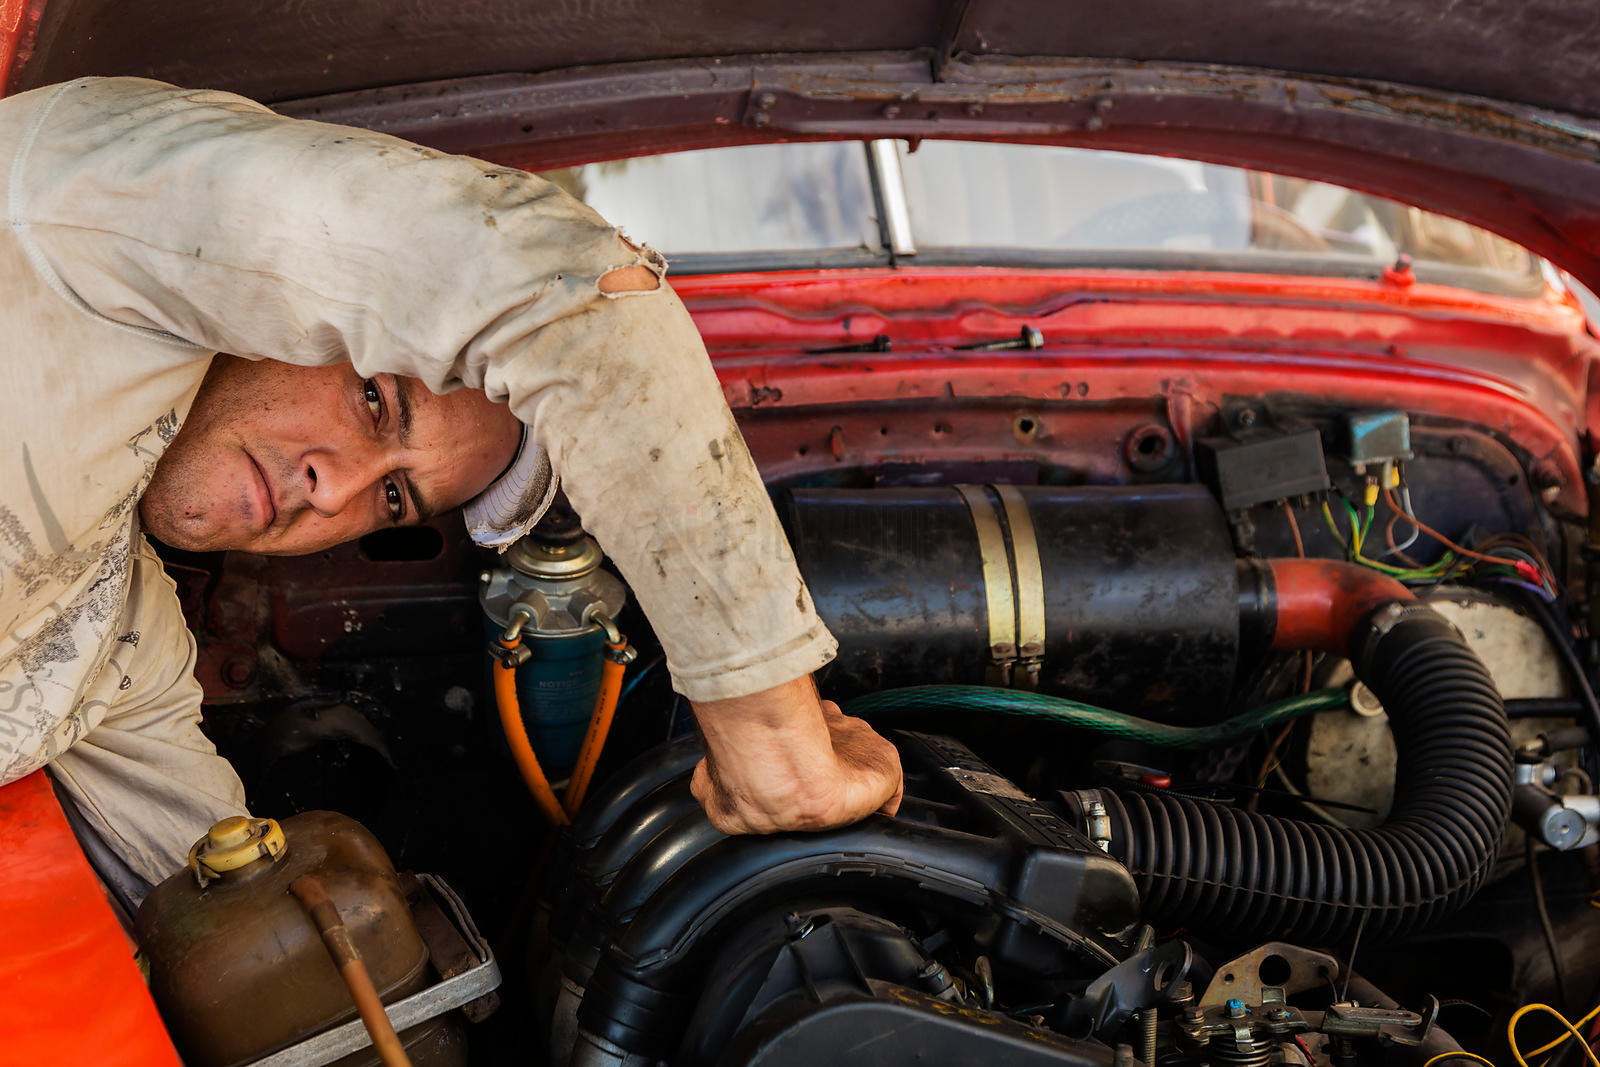 Mechanic Working on Vintage American Car